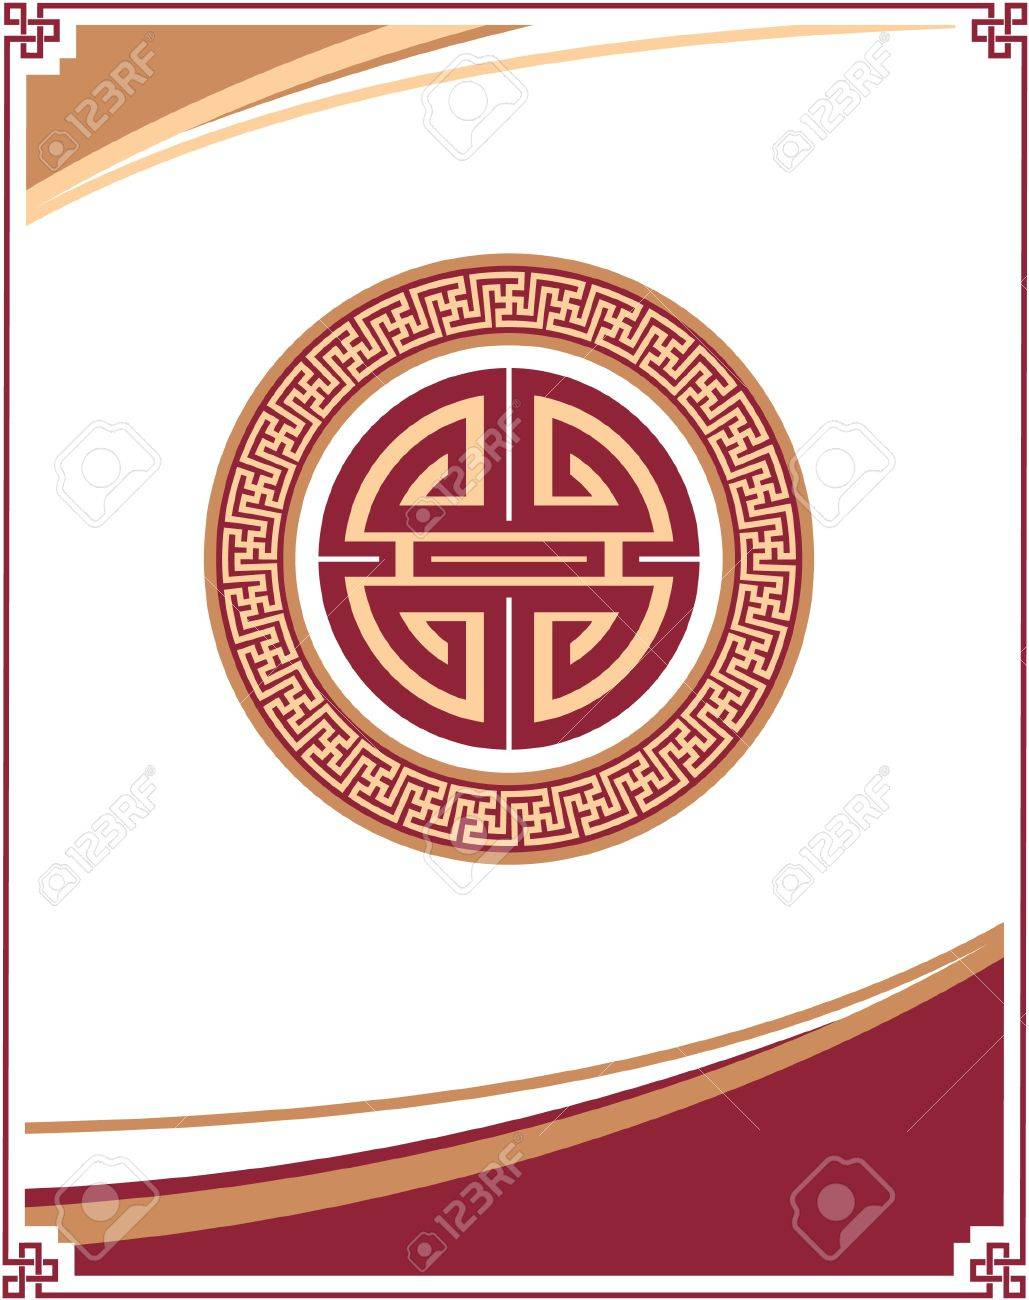 Oriental - Chinese - Template Frame with Knot Rosette Stock Vector - 12826070